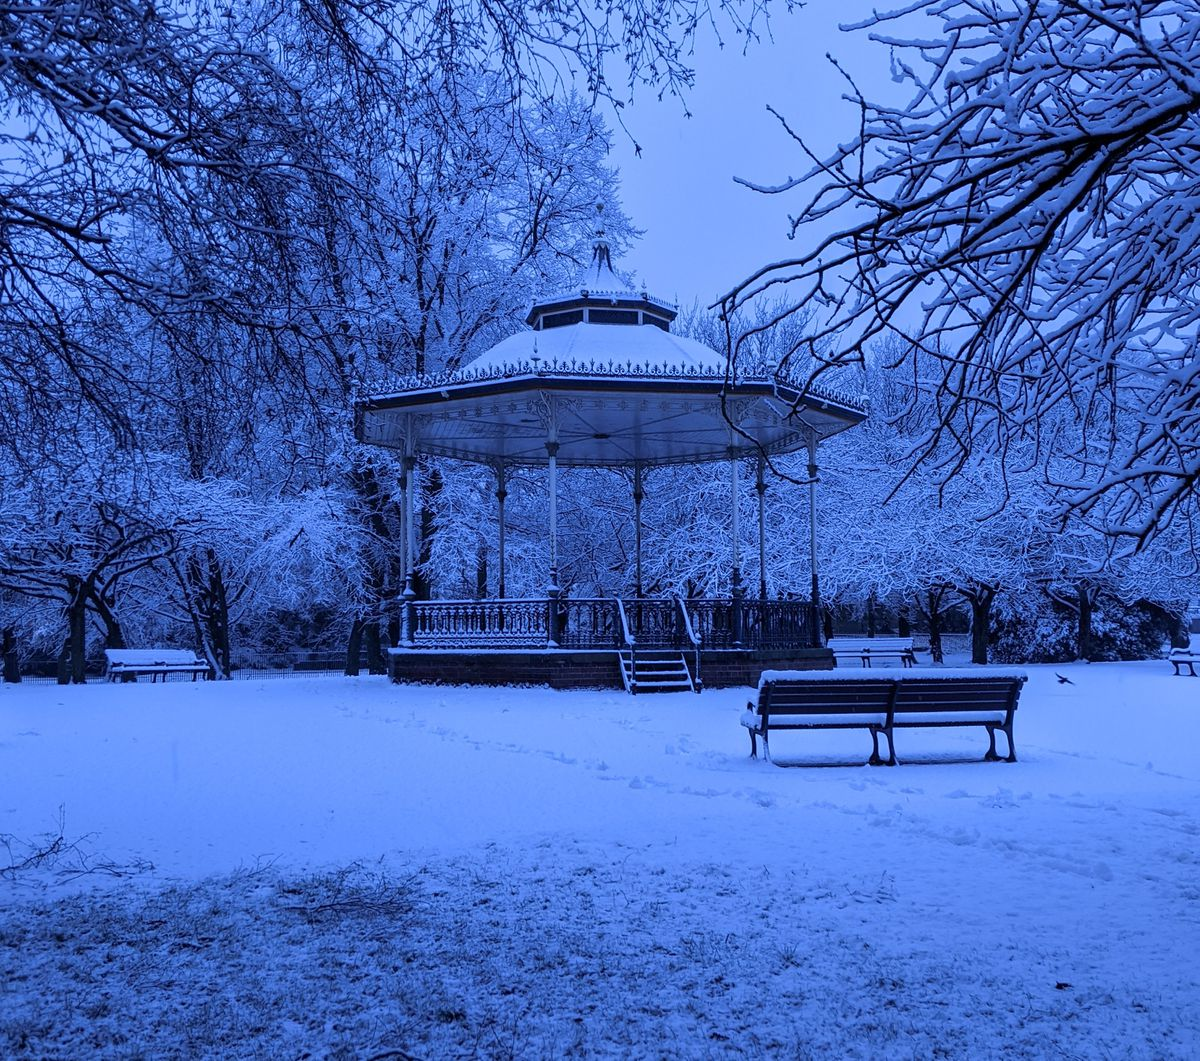 Fiona Hutchinson shared this from East Park in Wolverhampton